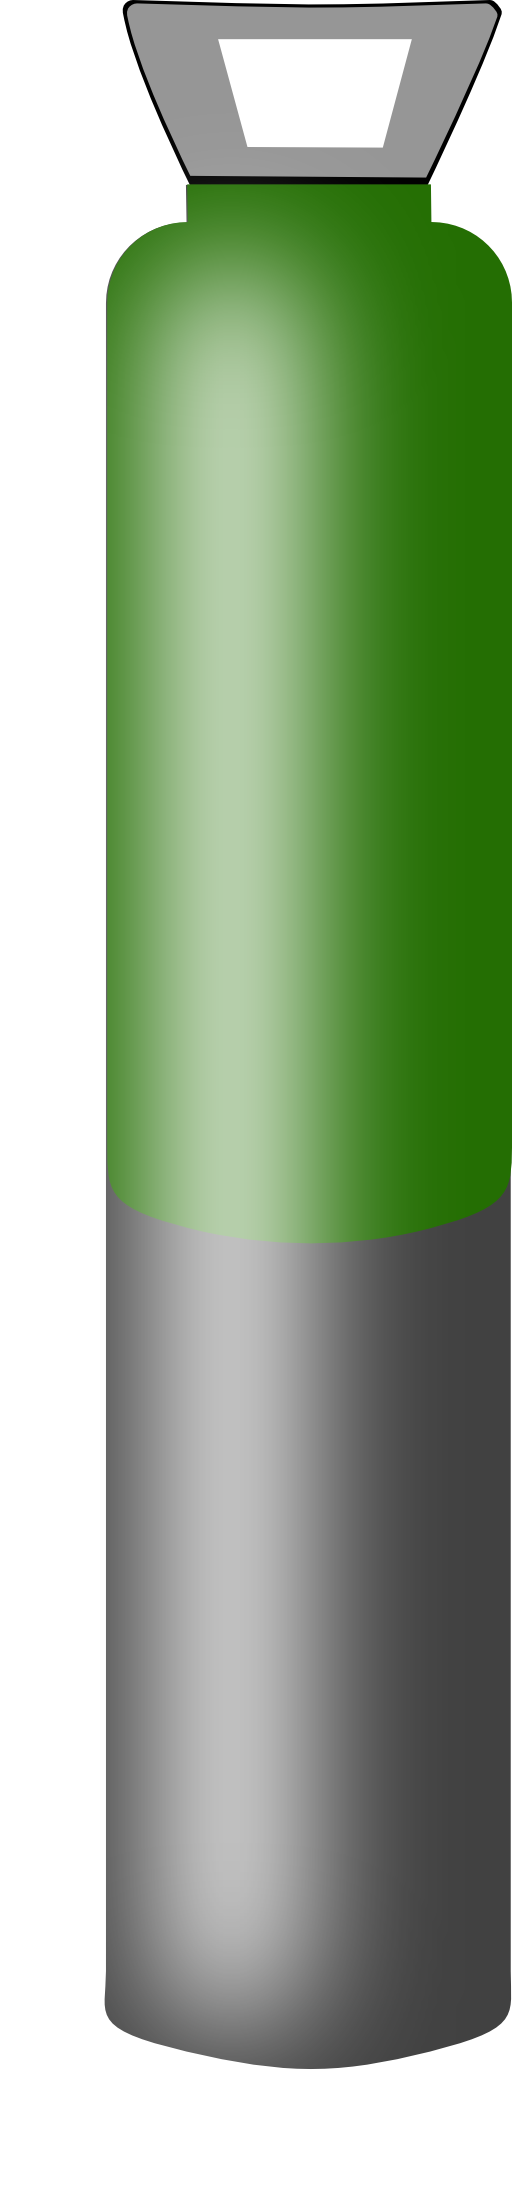 Gas Cylinder Grey And Dark Green High Pressure For Argon Clipart